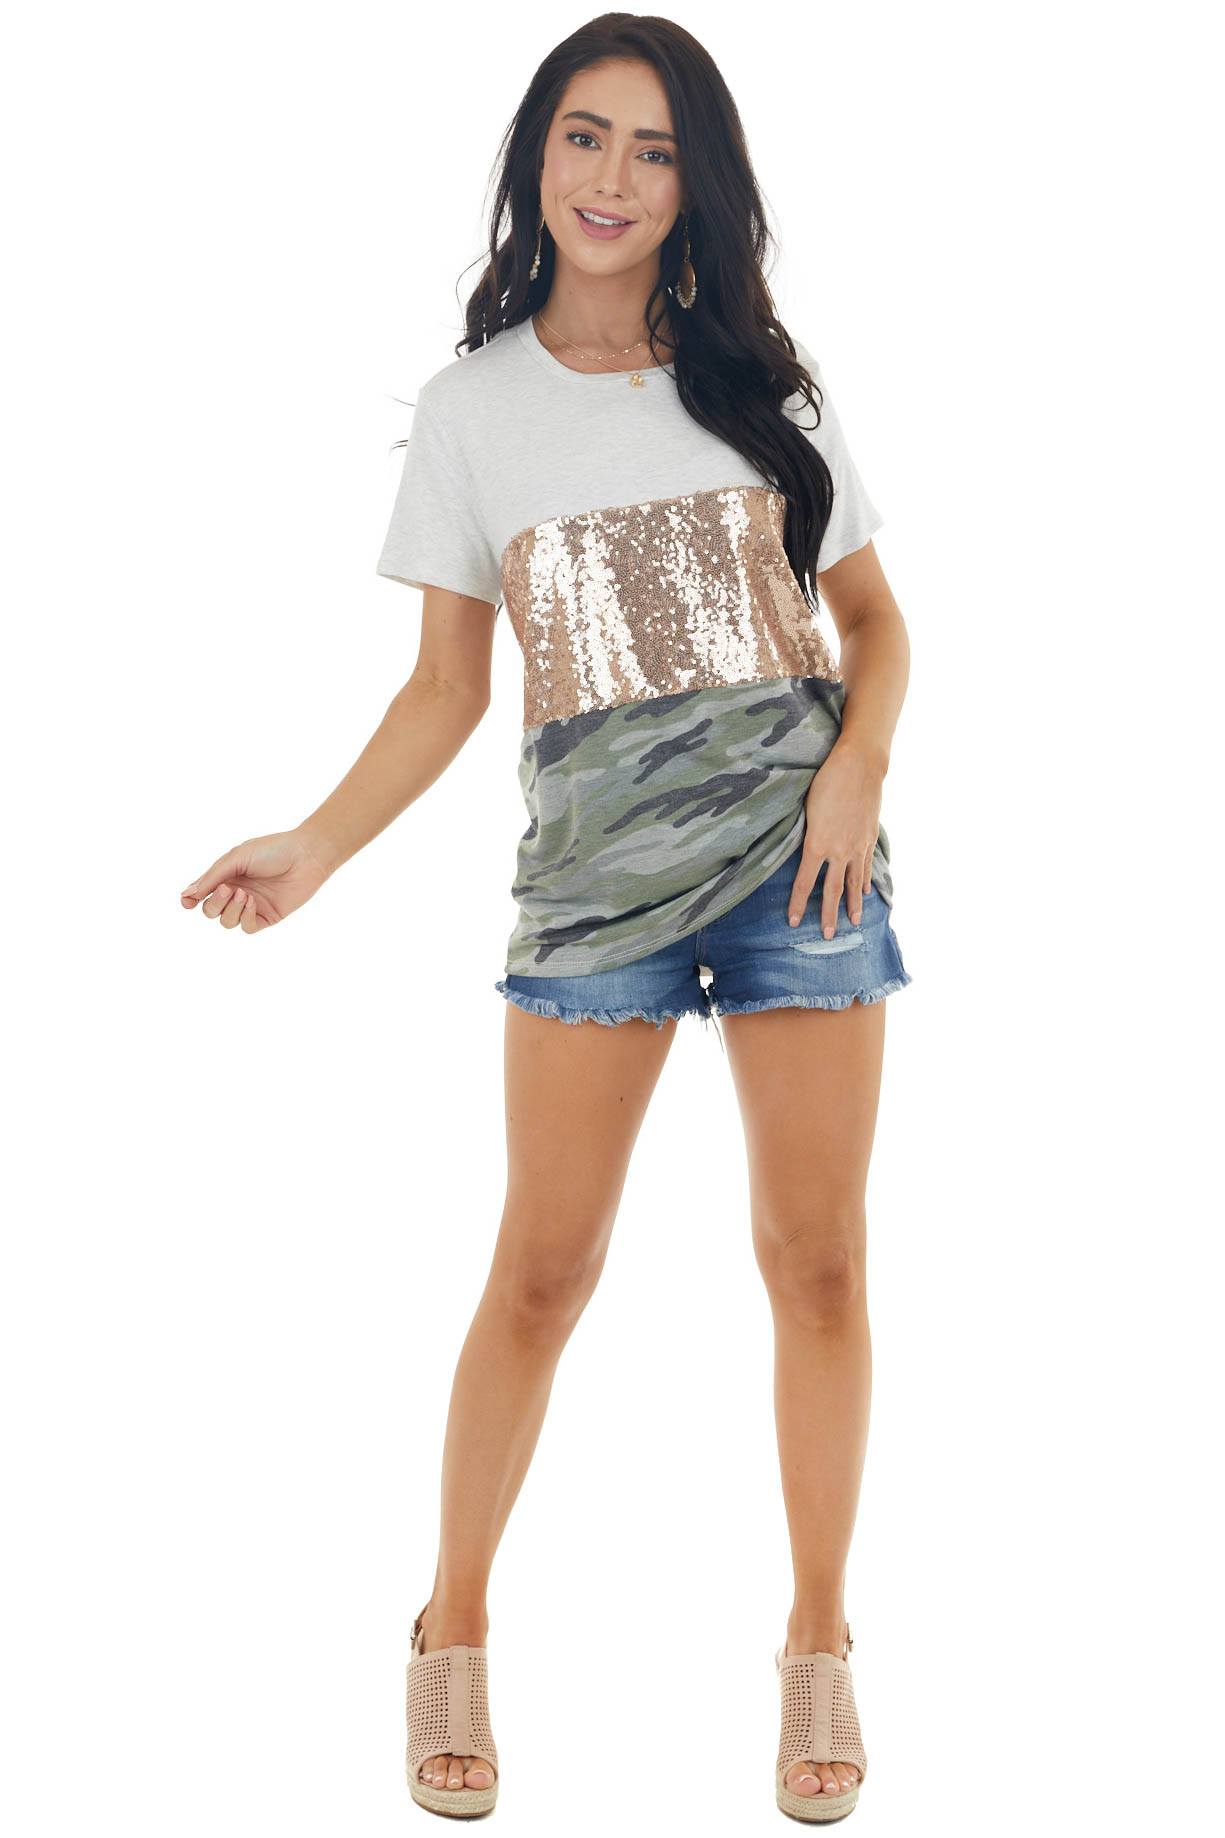 Pewter Grey Camo Colorblock Knit Tee with Short Sleeves